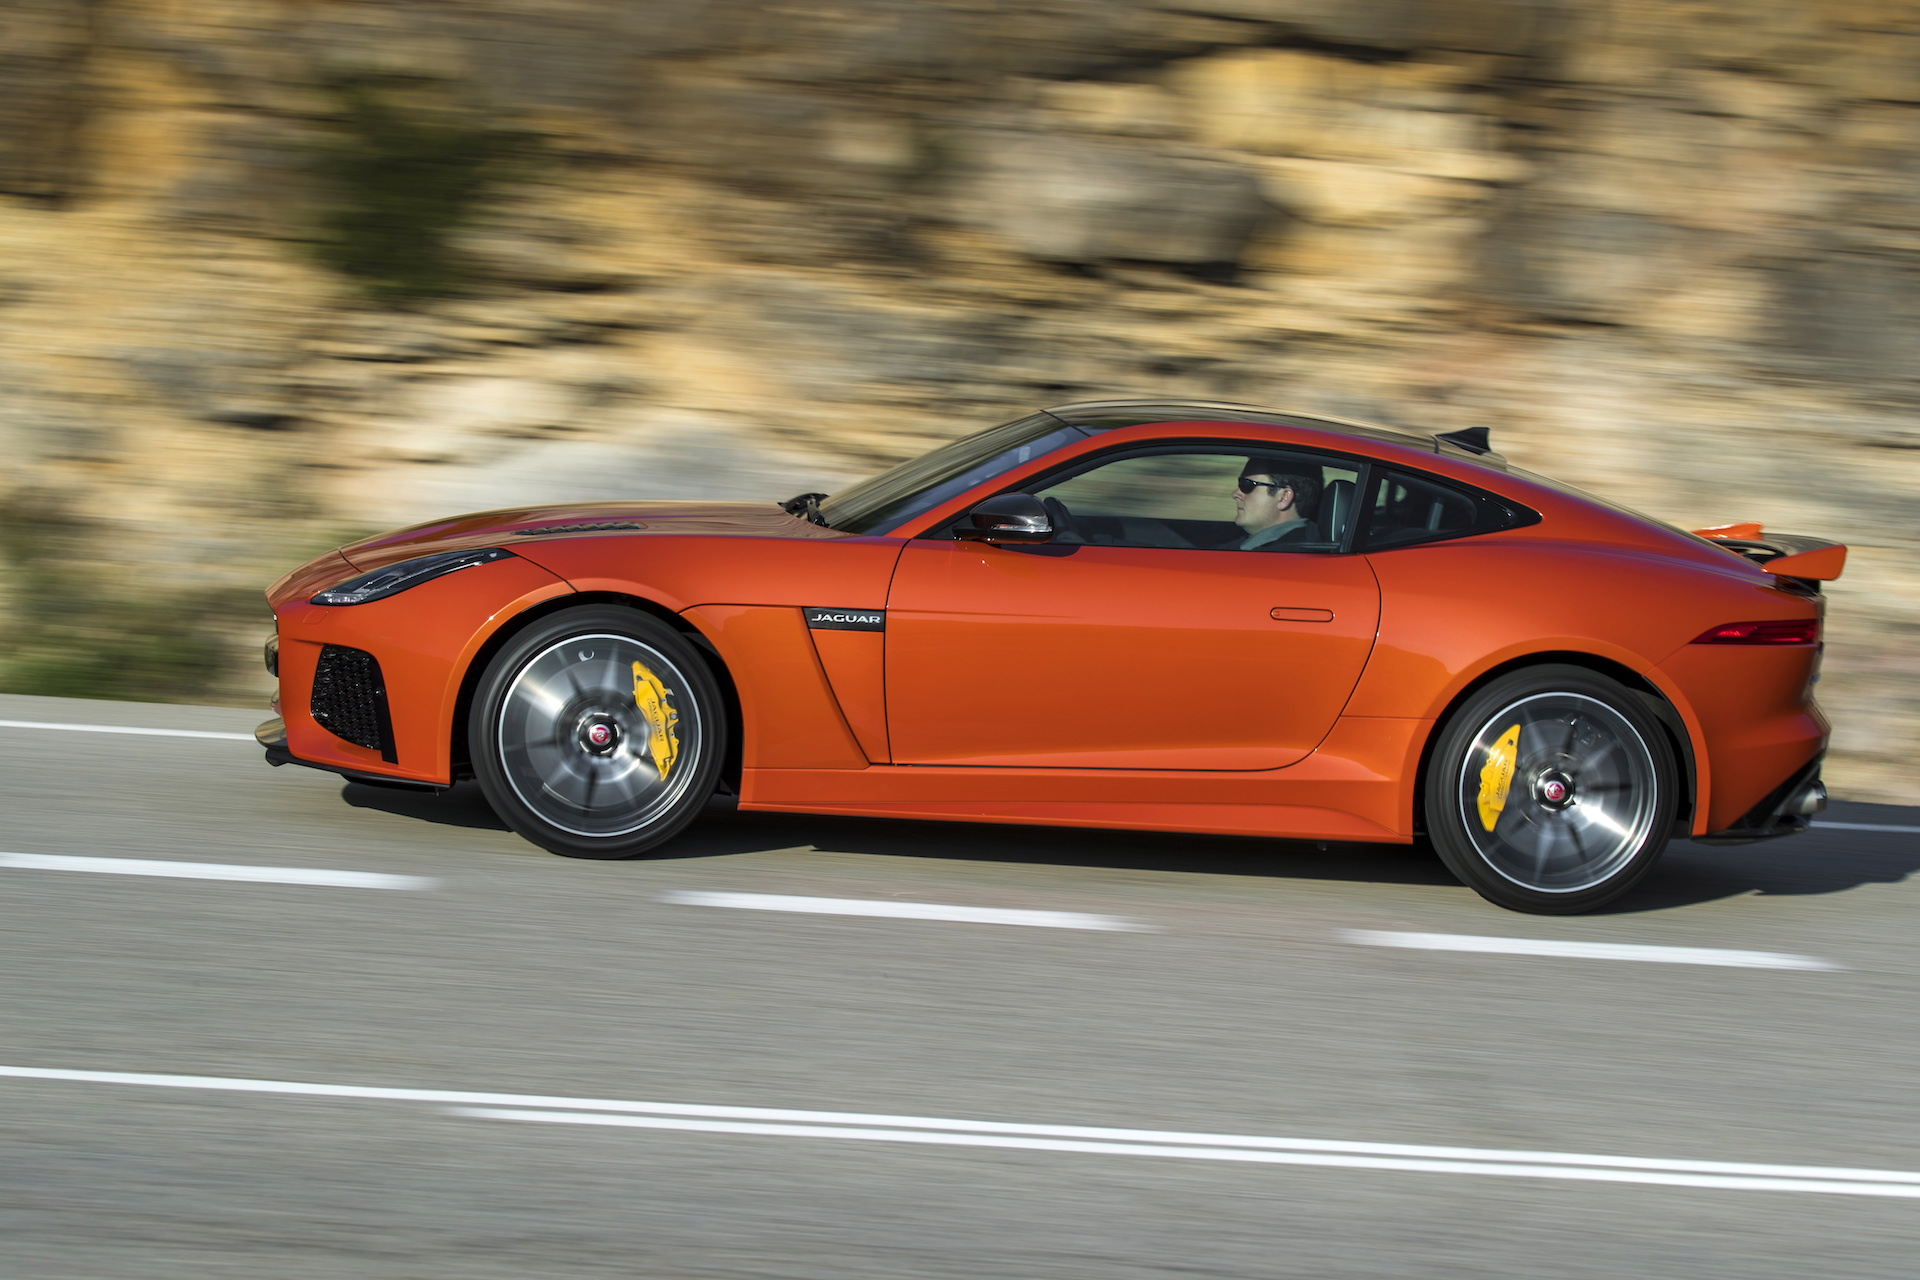 2017 Jaguar F Type Svr 24 Hours Of Le Mans Transformers 5 S Barricade The Week In Reverse